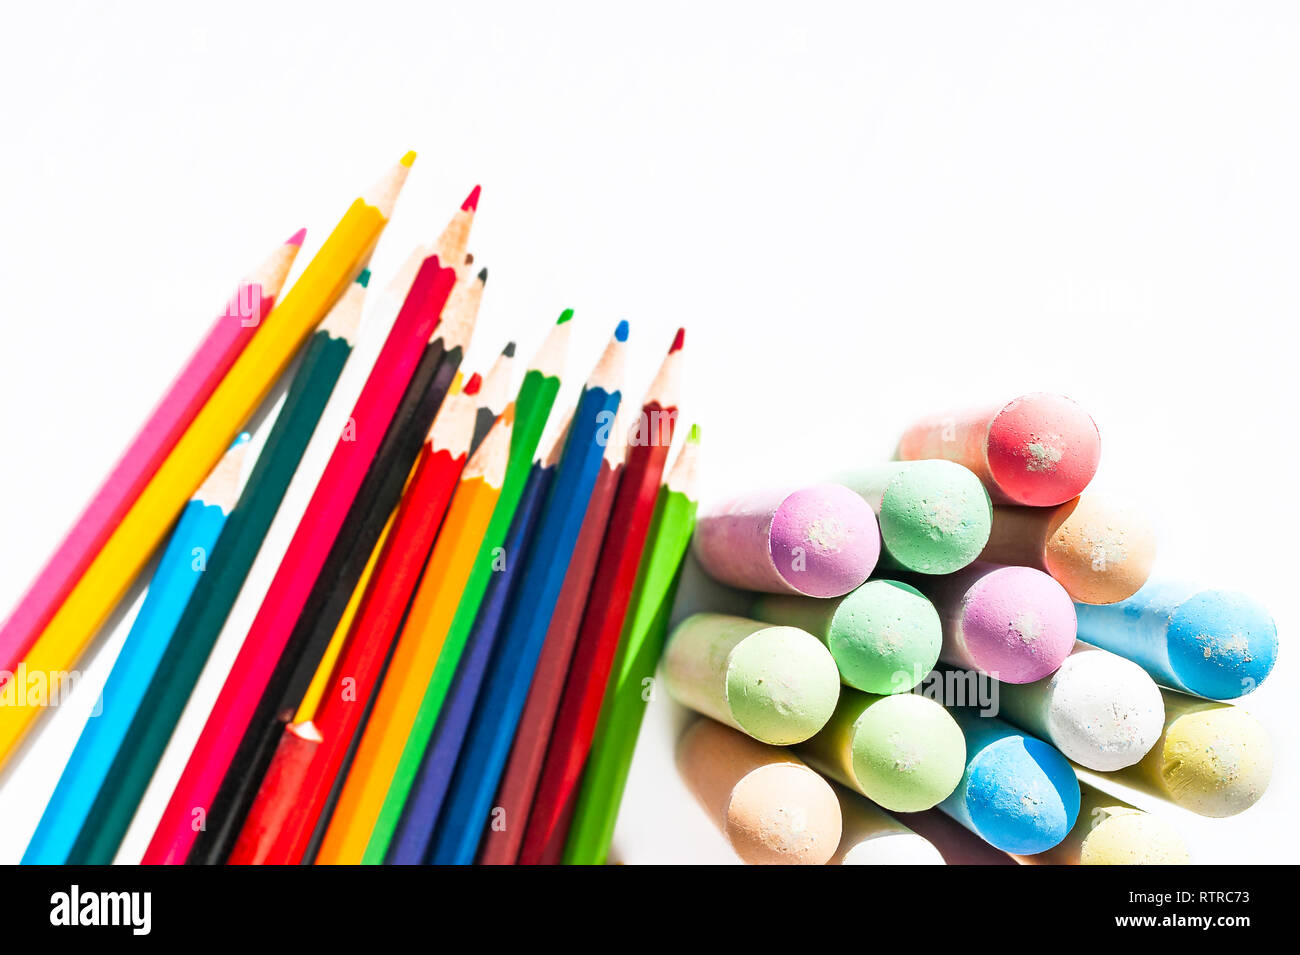 Chalk Sketch Stock Photos Amp Chalk Sketch Stock Images